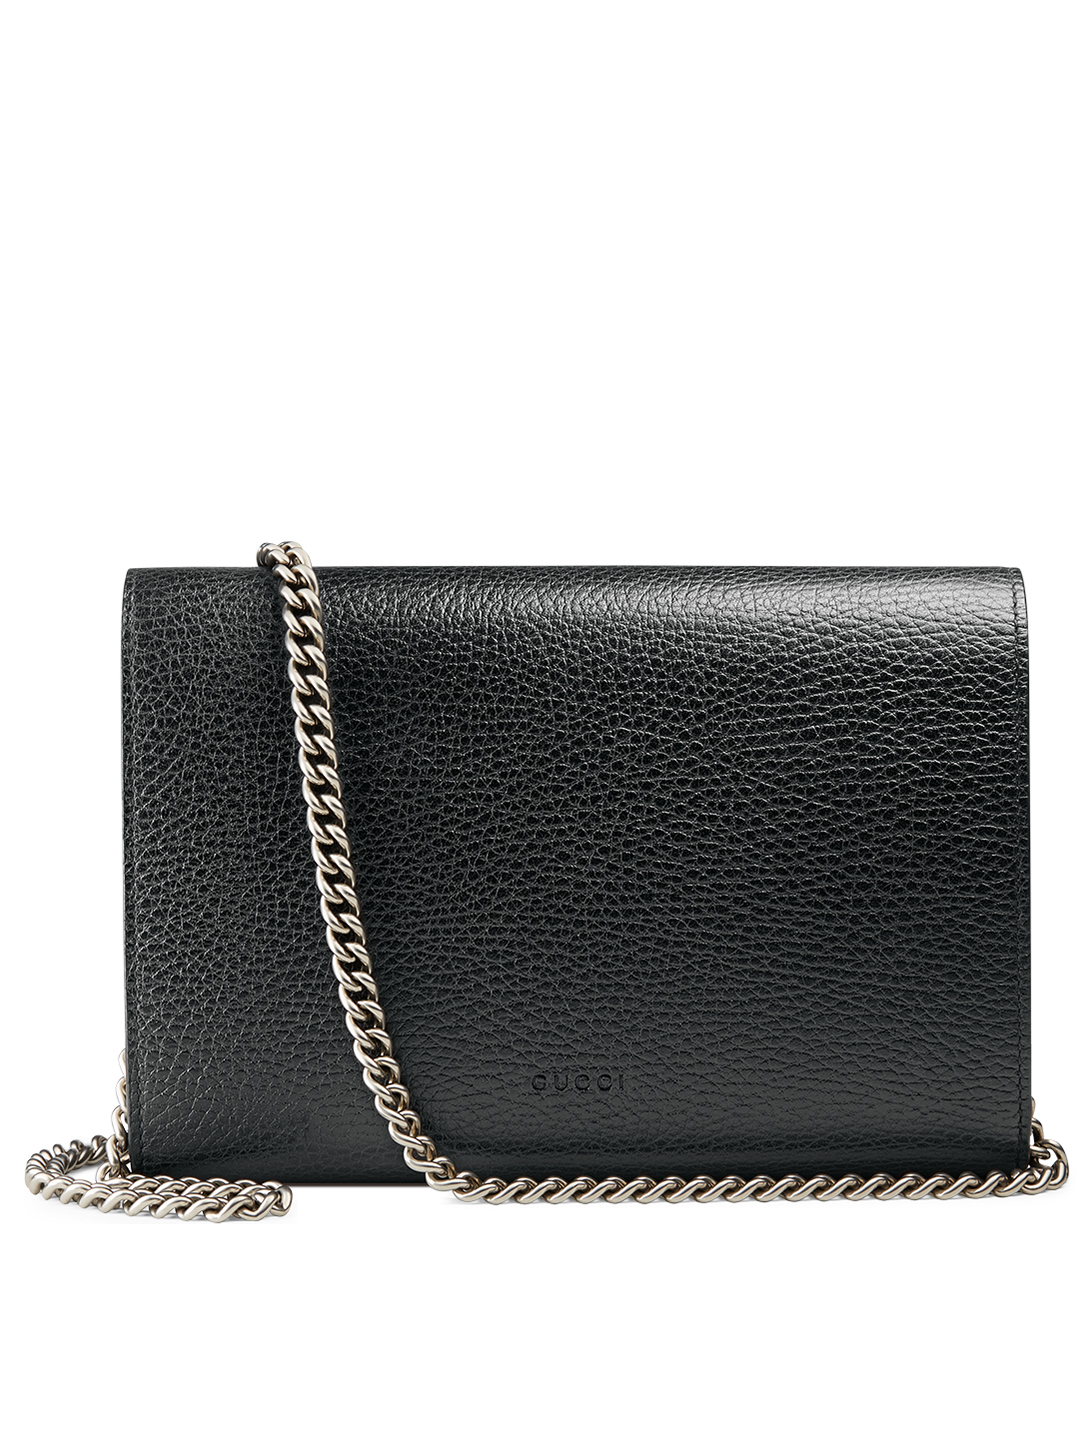 GUCCI Dionysus Leather Chain Wallet Bag Women's Black